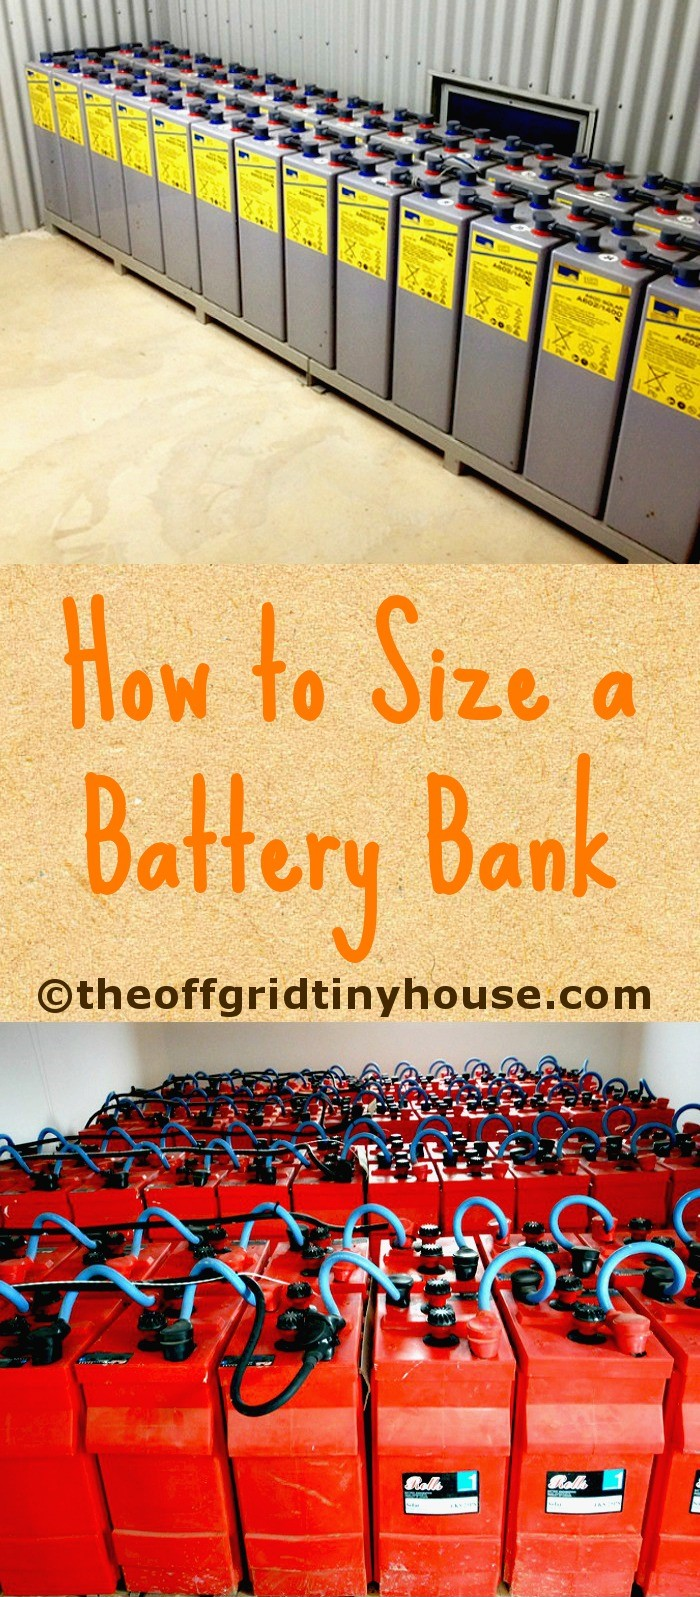 How to Size a Battery Bank. The right #battery bank size is essential because undersizing or oversizing the #batteries will damage and shorten their lifespan. Click through to learn the complete process to properly #sizing your #offgrid #batterybank.